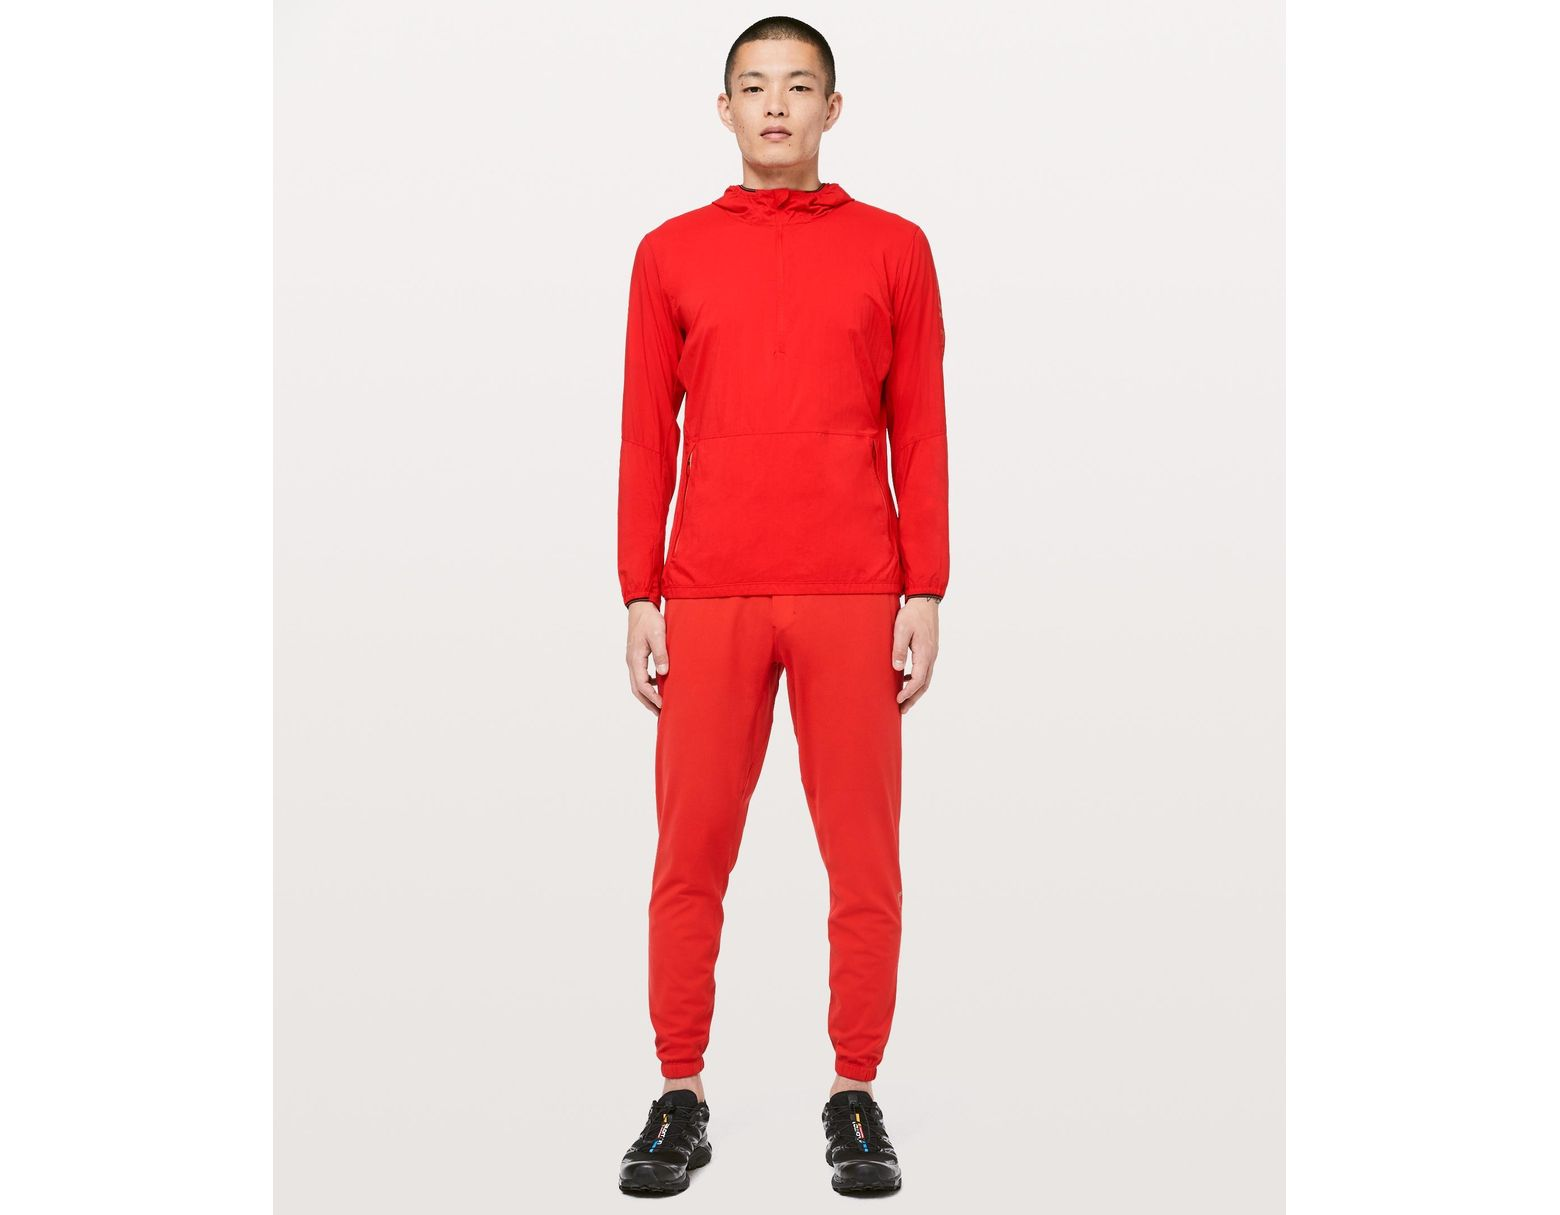 83fd65e57 lululemon athletica Lost In The Hustle Anorak  lunar New Year in Red for  Men - Save 50% - Lyst